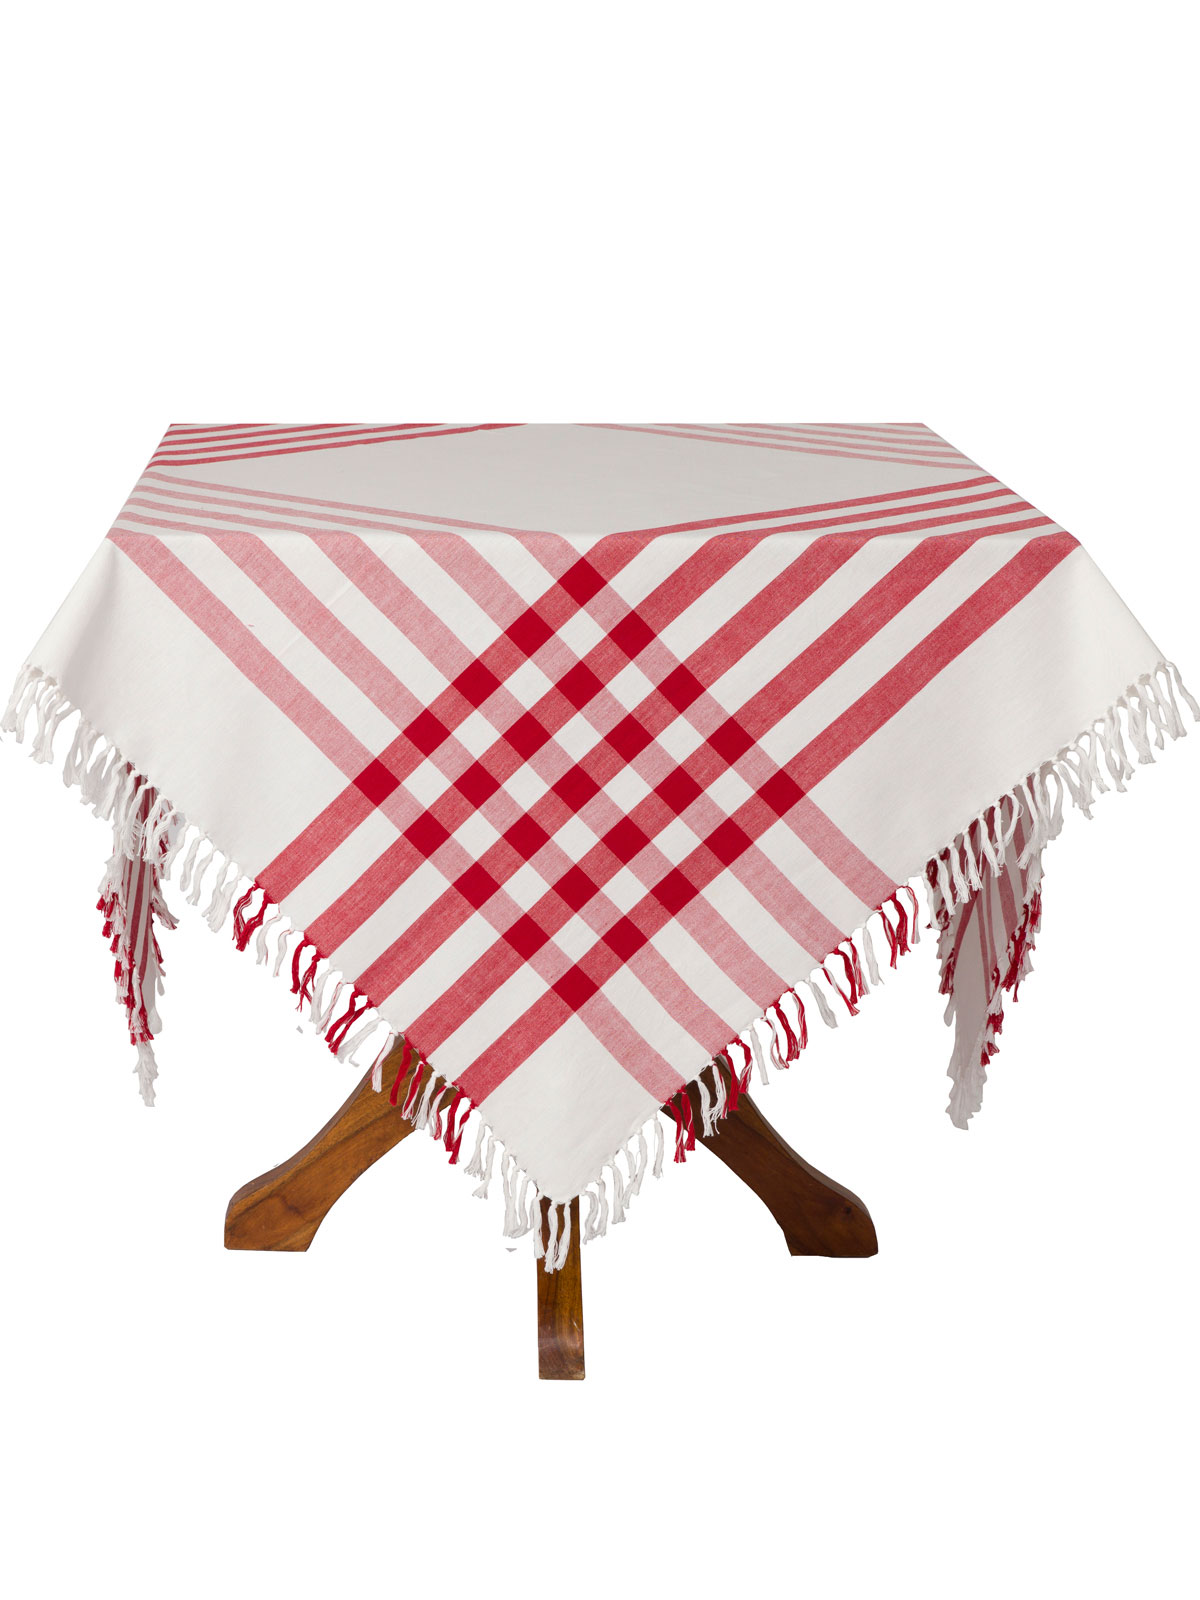 April Cornell Bedding Happy Picnic Gingham Tablecloth - Red | Attic Sale, Linens ...